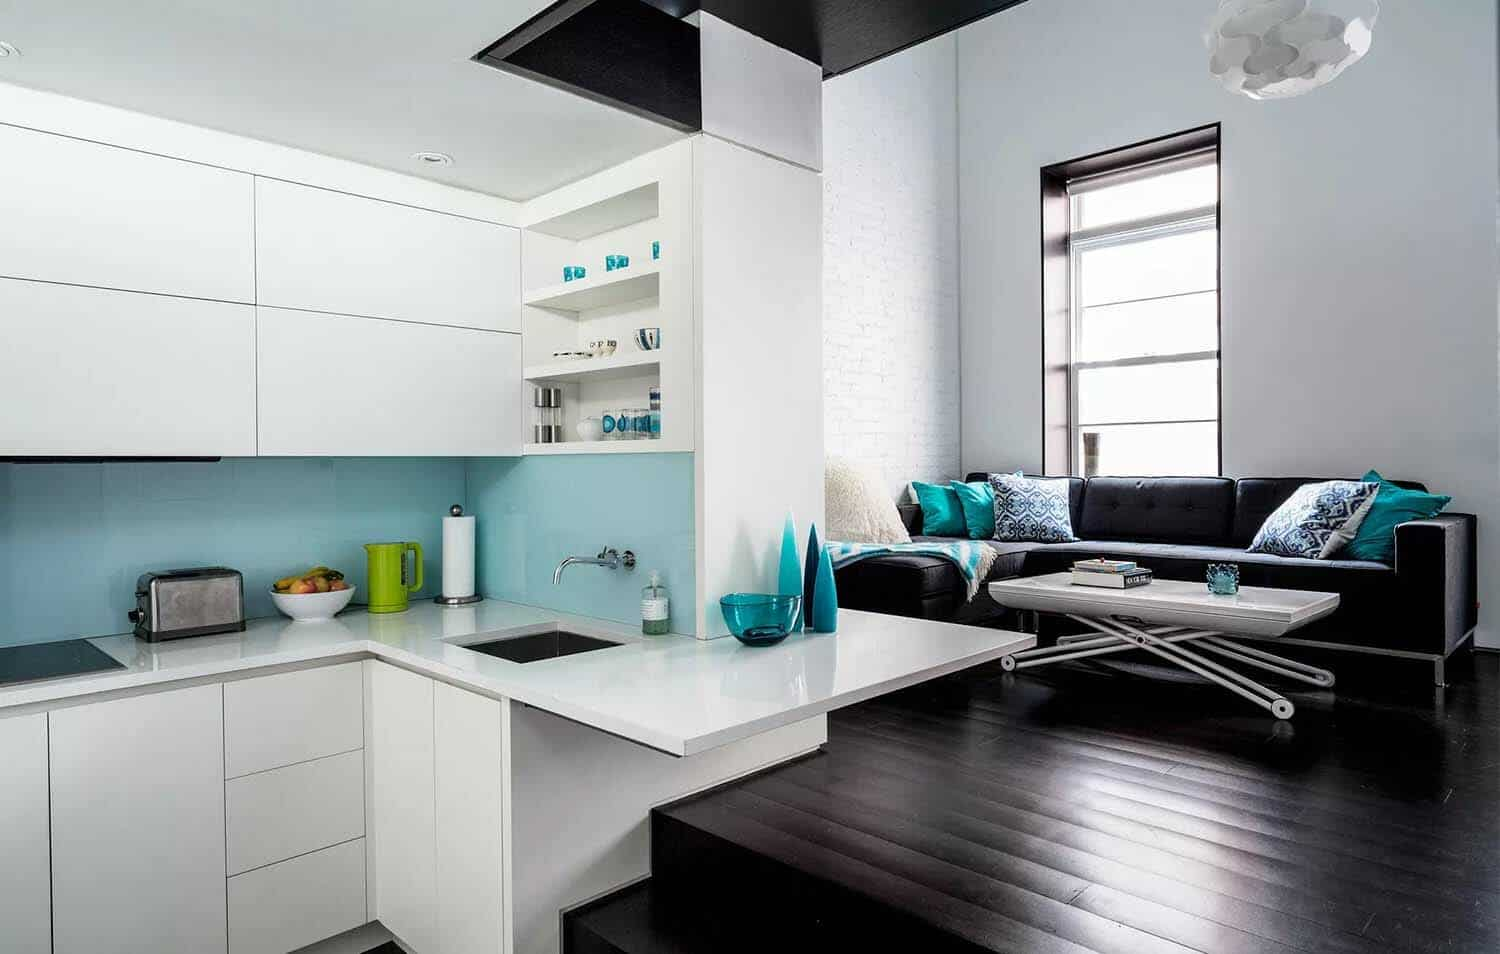 Coolest tiny brownstone apartment on the Upper West Side, New York